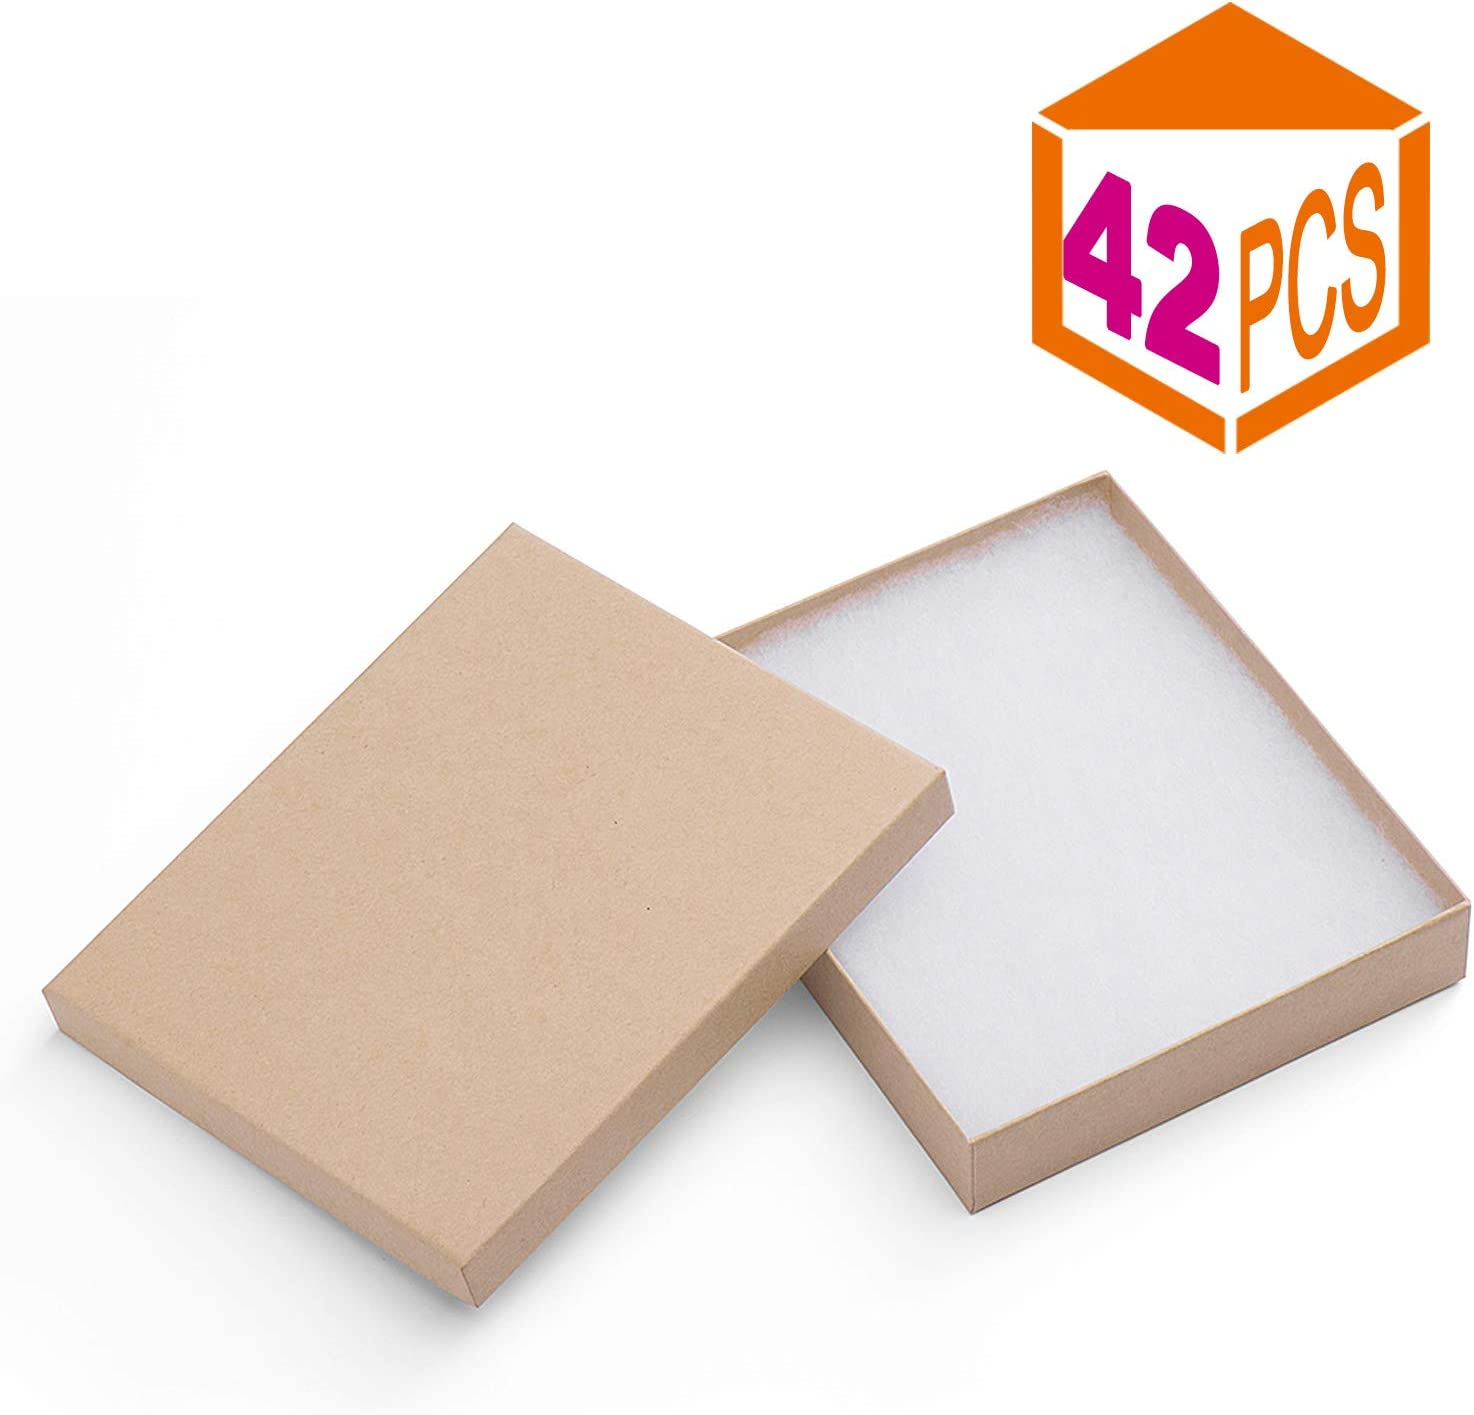 MESHA 42 Pack Cardboard 6x5x1 Inch Paper Box for Jewelry Box Gift Case Thick Paper Box With Cotton Filled (Brown)